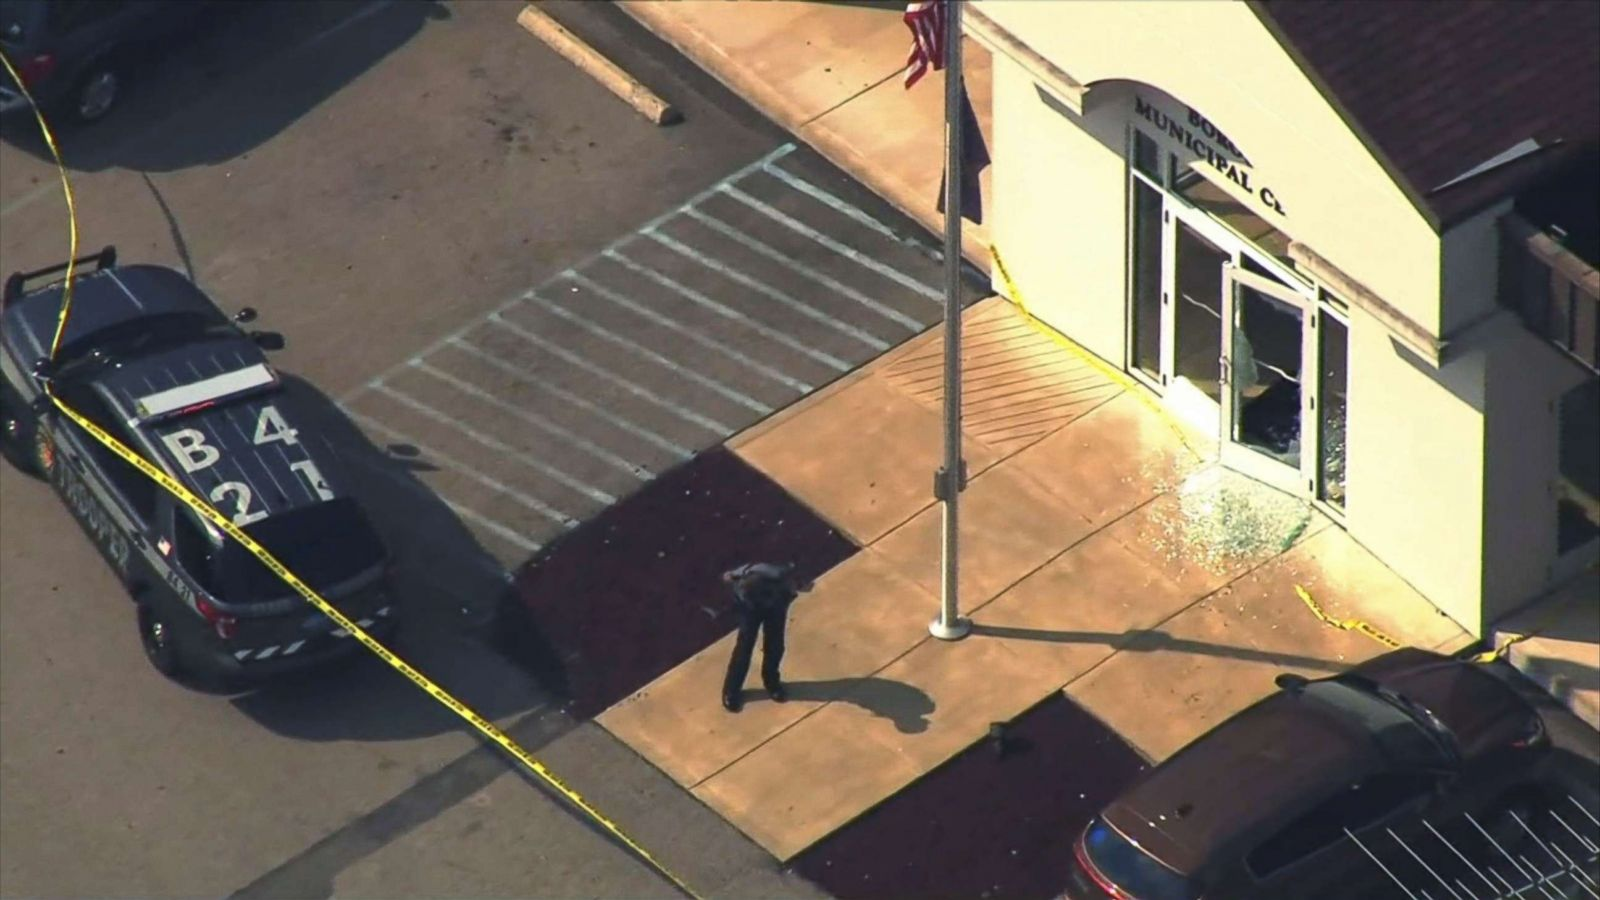 Gunman in courthouse shooting that injured 4 was scheduled